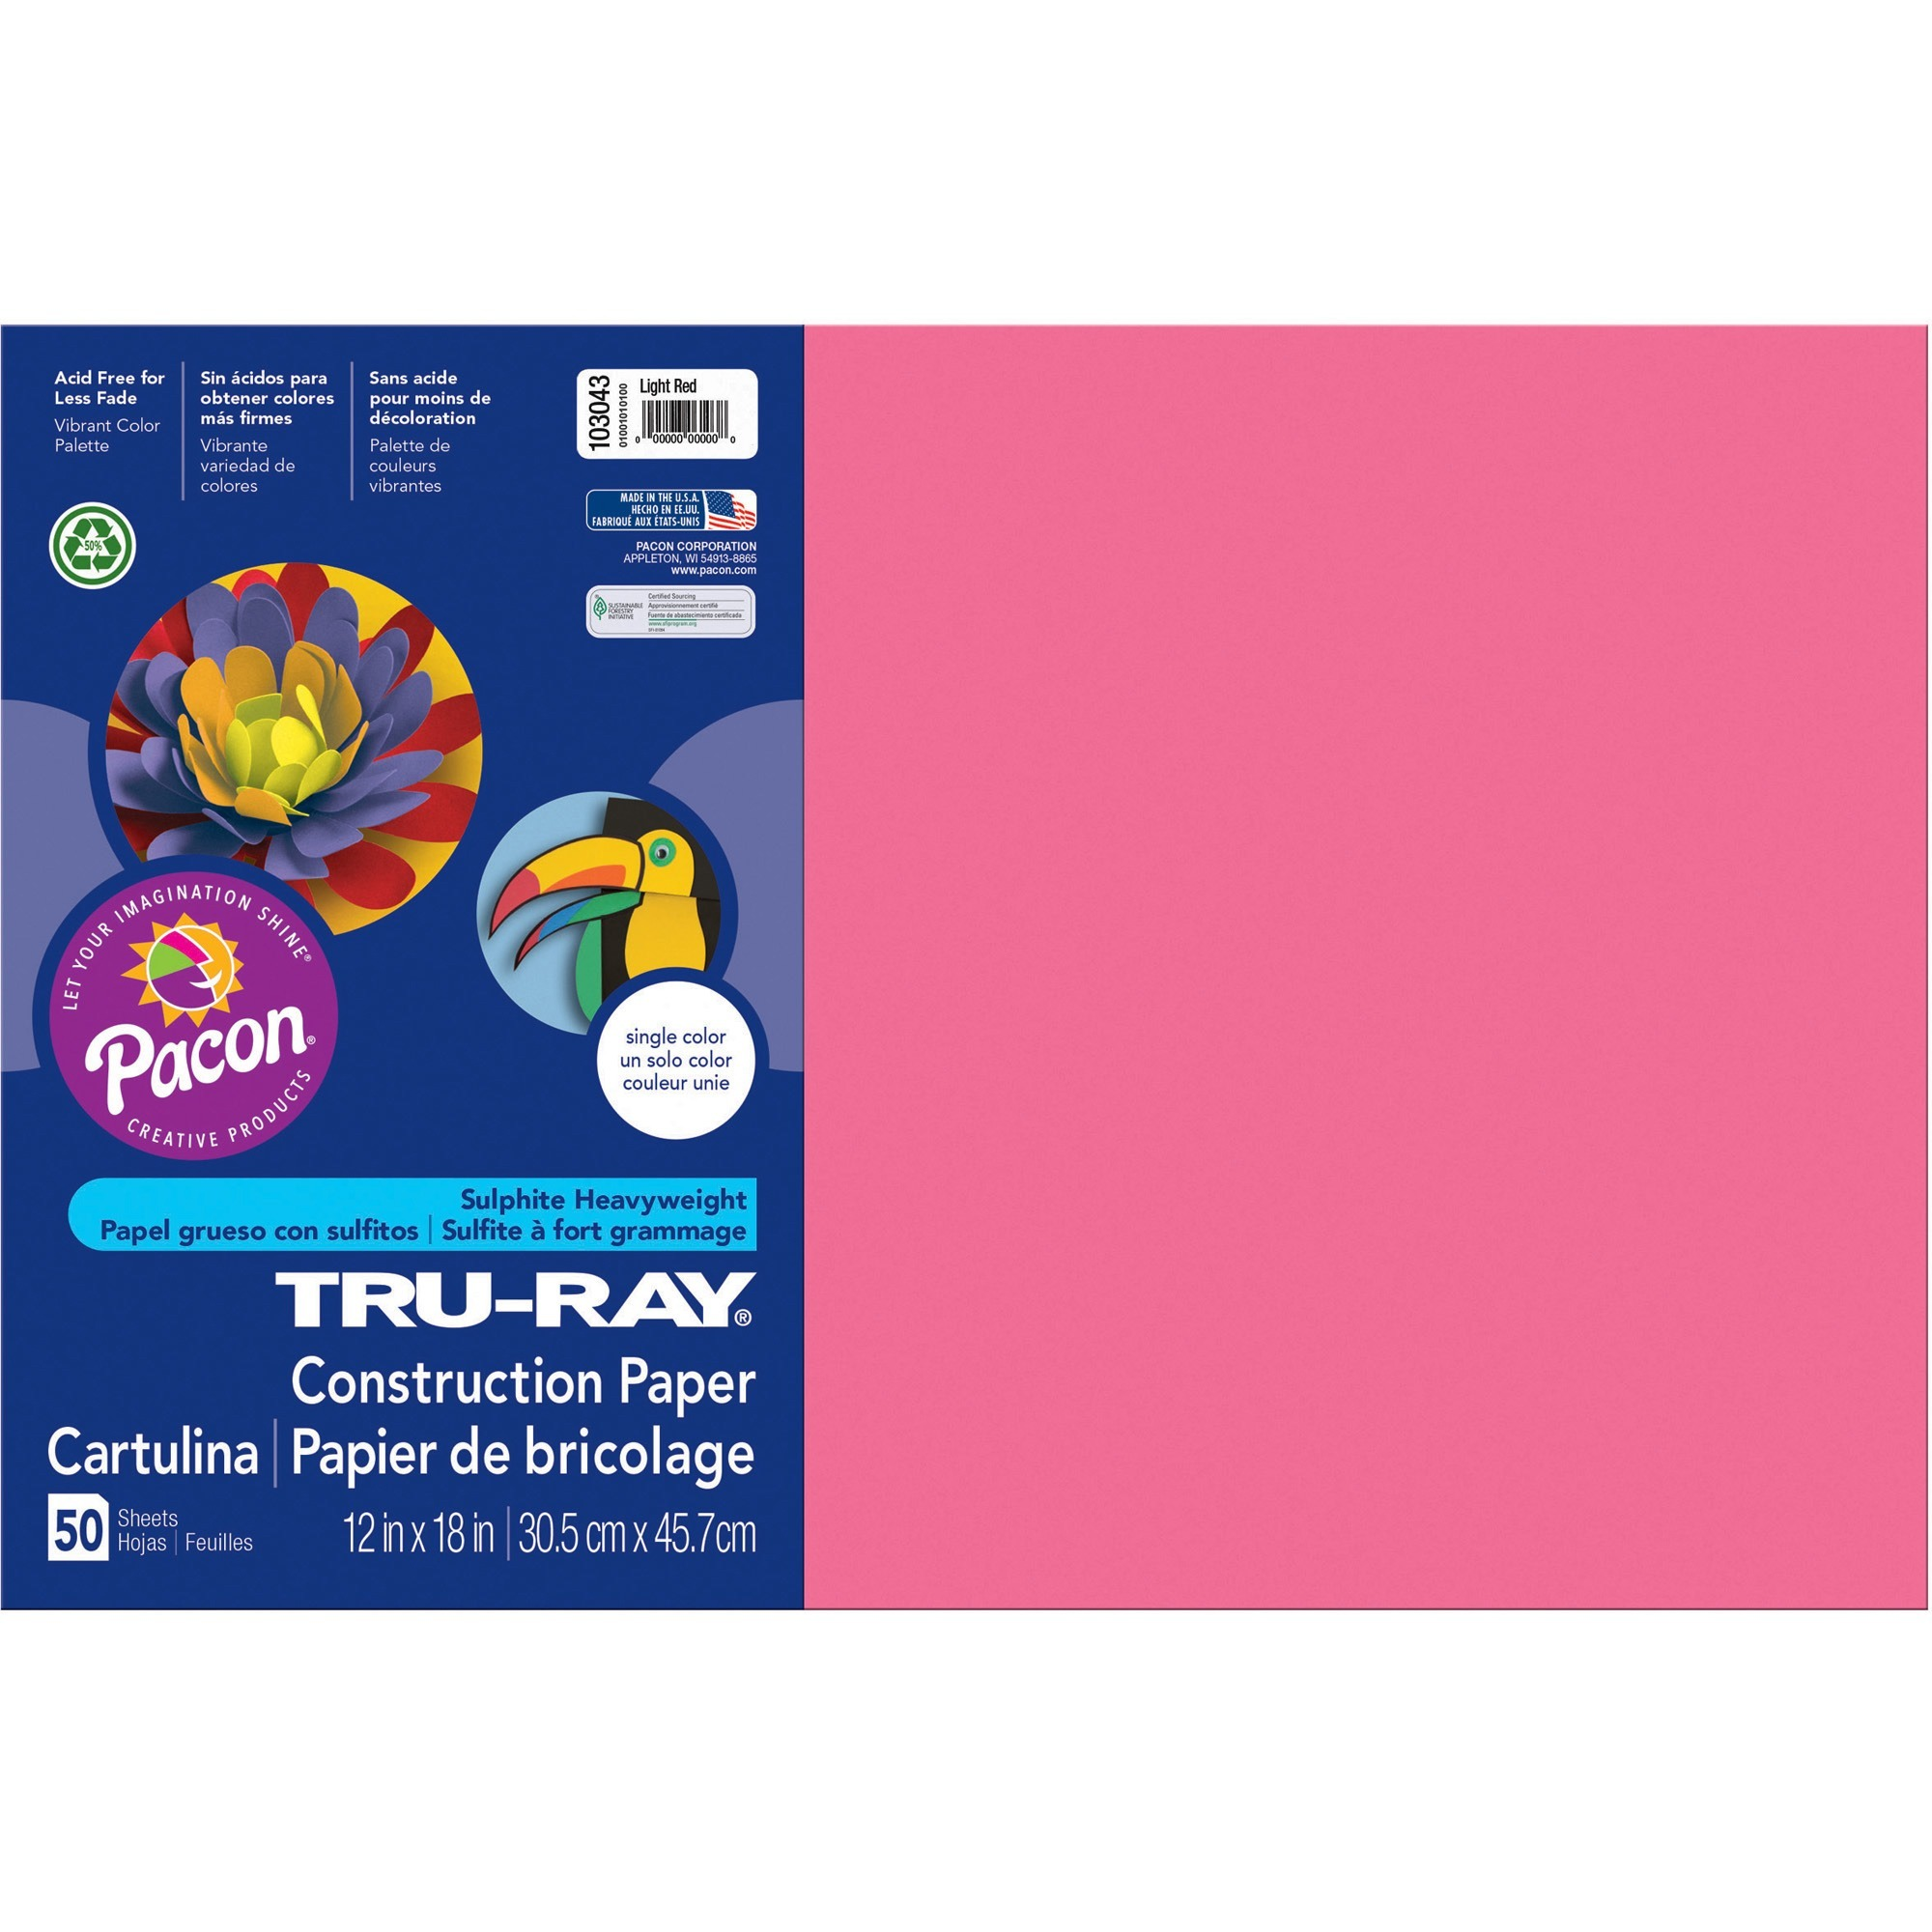 Tru-Ray, PAC103043, Construction Paper, 1 Pack, Light Red